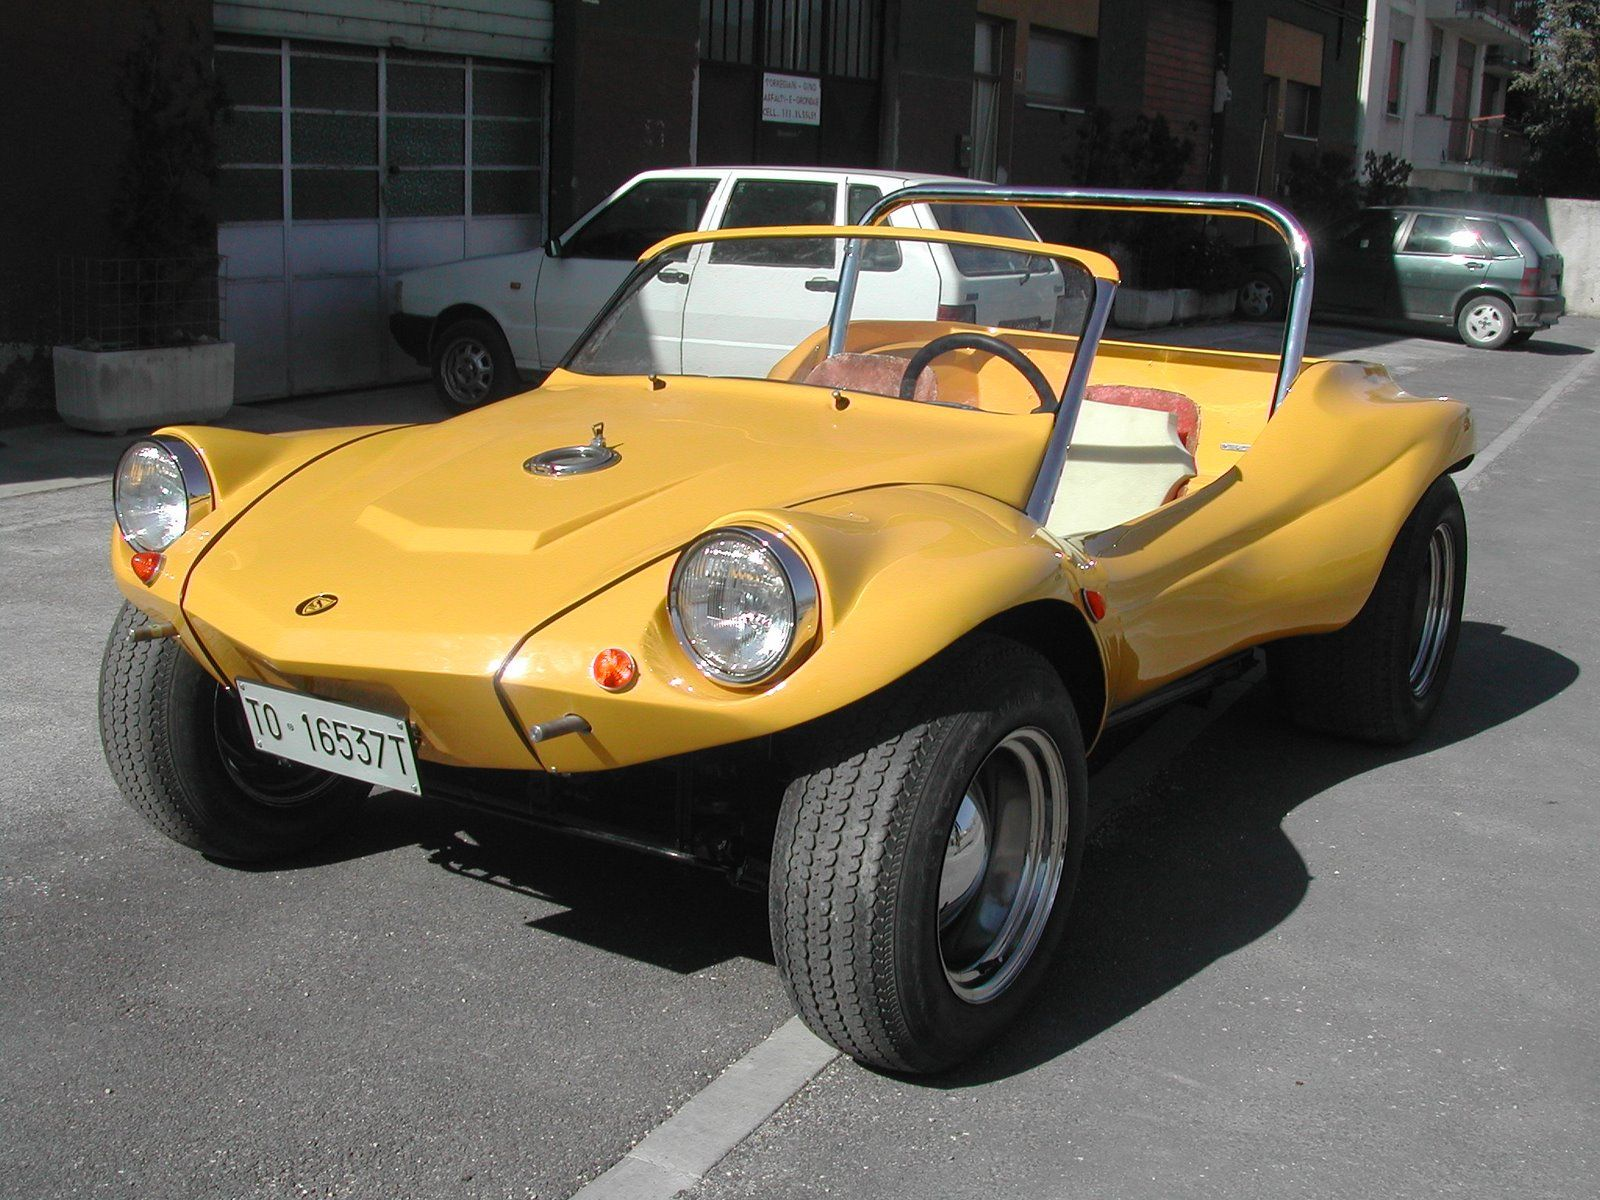 Lake Taupo pageant Navy  Dune Buggy Puma GT, smoother edges than a Deserter GT, but similar enough.  | Dune buggy, Beach buggy, Buggy